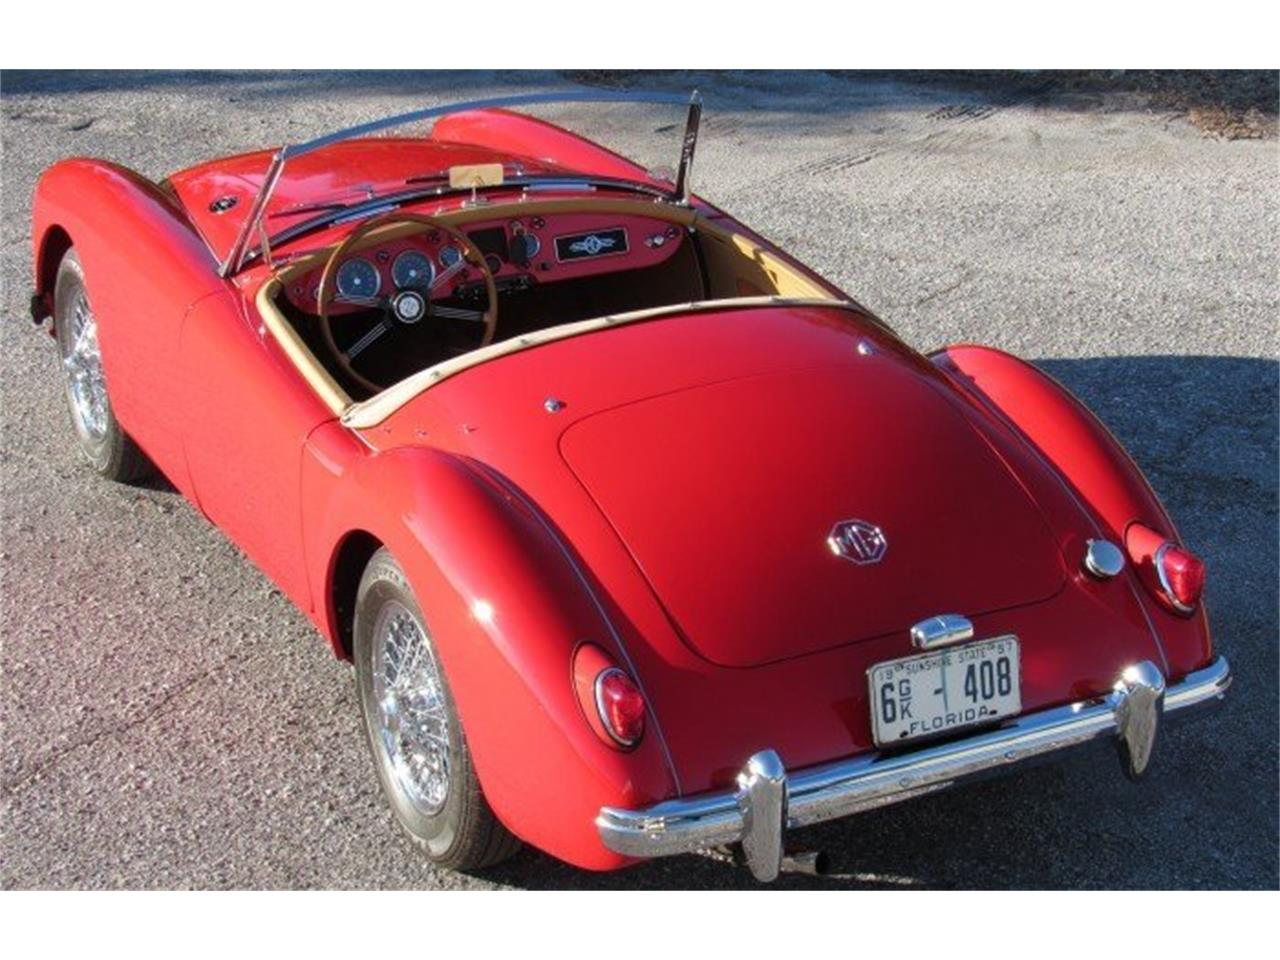 Large Picture of 1957 MG MGA Auction Vehicle Offered by Premier Auction Group - PH10